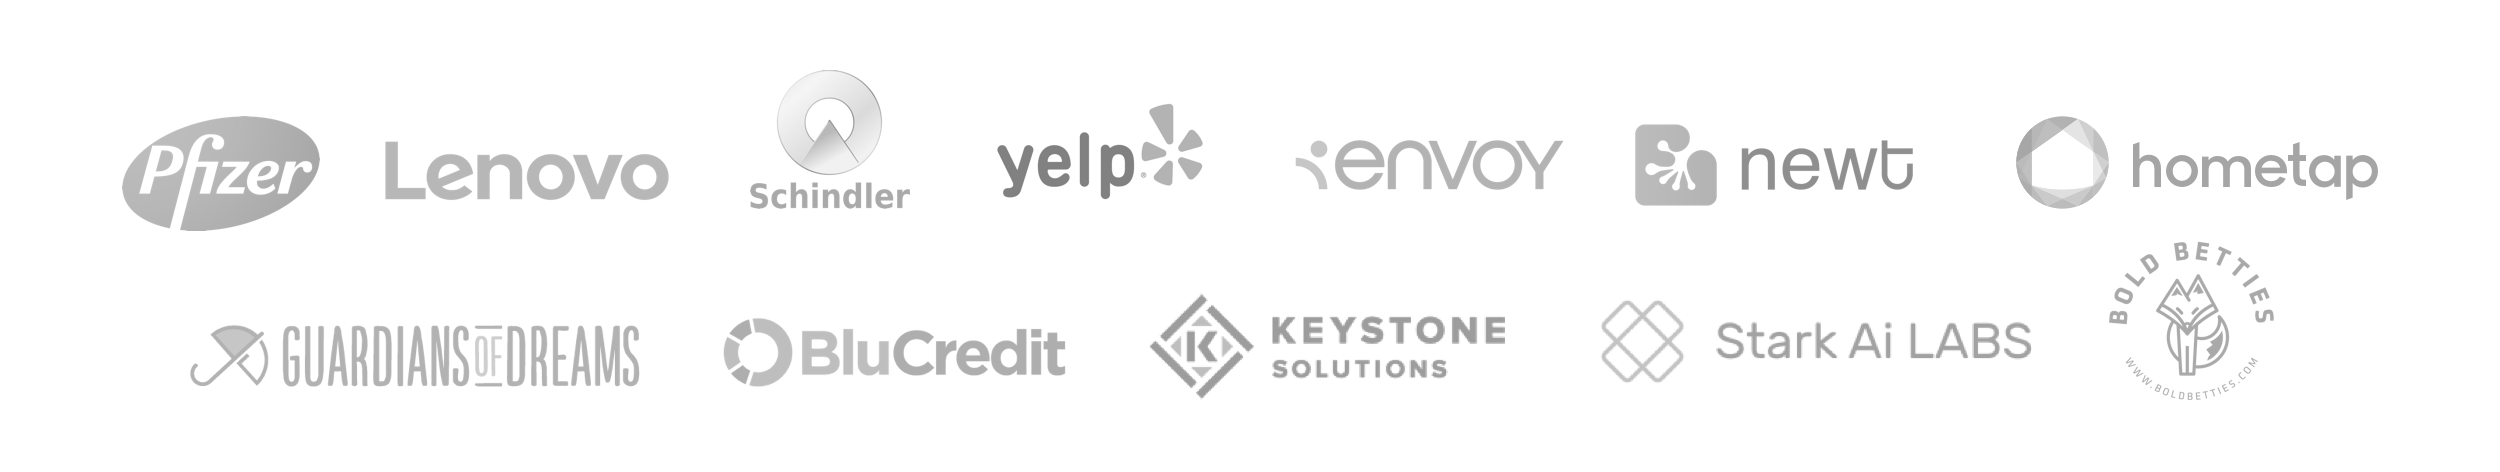 companies-we-worked-with.png